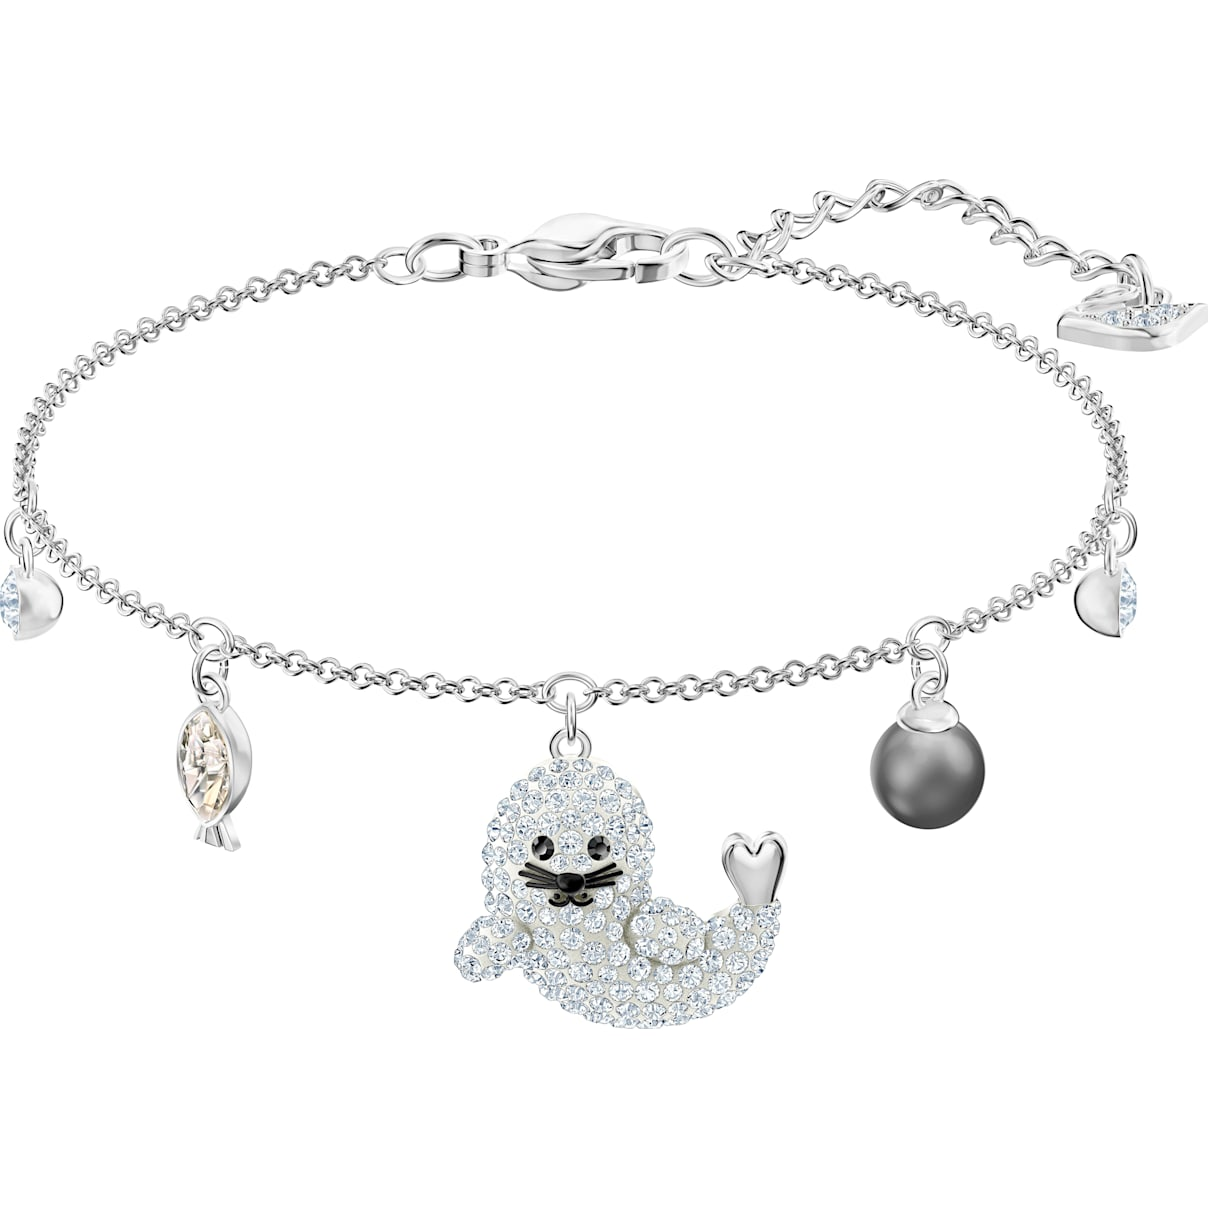 Swarovski Polar Bracelet, Multi-colored, Rhodium plated